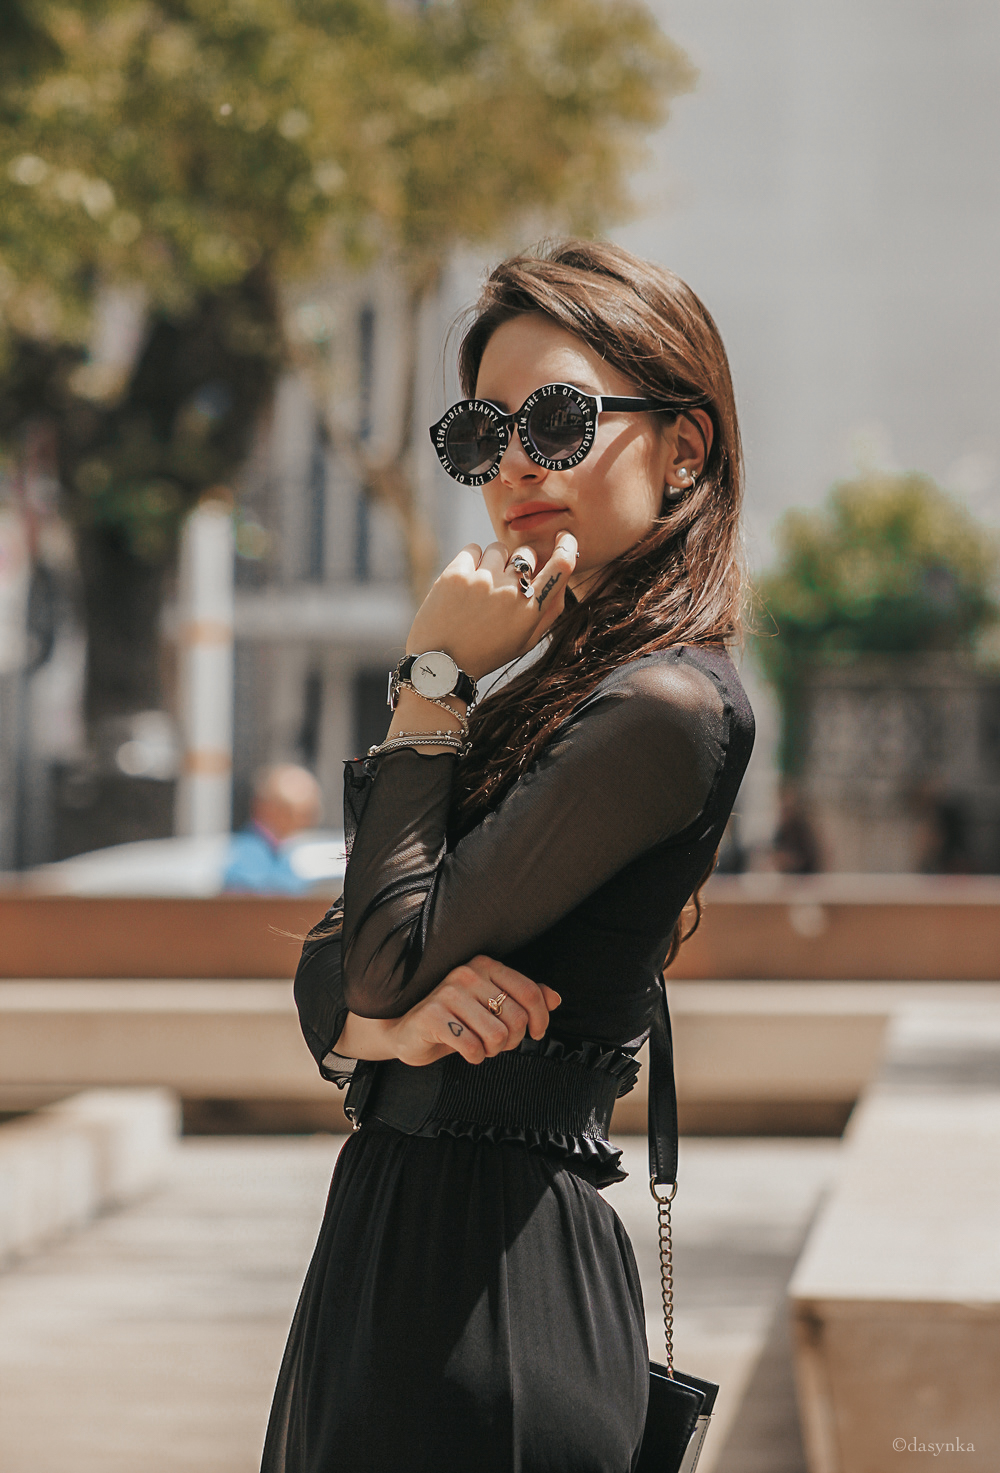 dasynka-fashion-blog-blogger-influencer-inspiration-shooting-model-globettrotter-travel-girl-lookbook-instagram-long-hair-street-style-casual-italy-lifestyle-outfit-poses-black-mesh-pants-tulle-trasparent-top-bag-daniel-wellington-watch-ootd-tiffany-and-co-necklace-sunglasses-eyewear-sunnies-chanel-elegant-chic-belt-stiletto-heels-forever21-shoot-ideas-inspo-kapten-mvmt